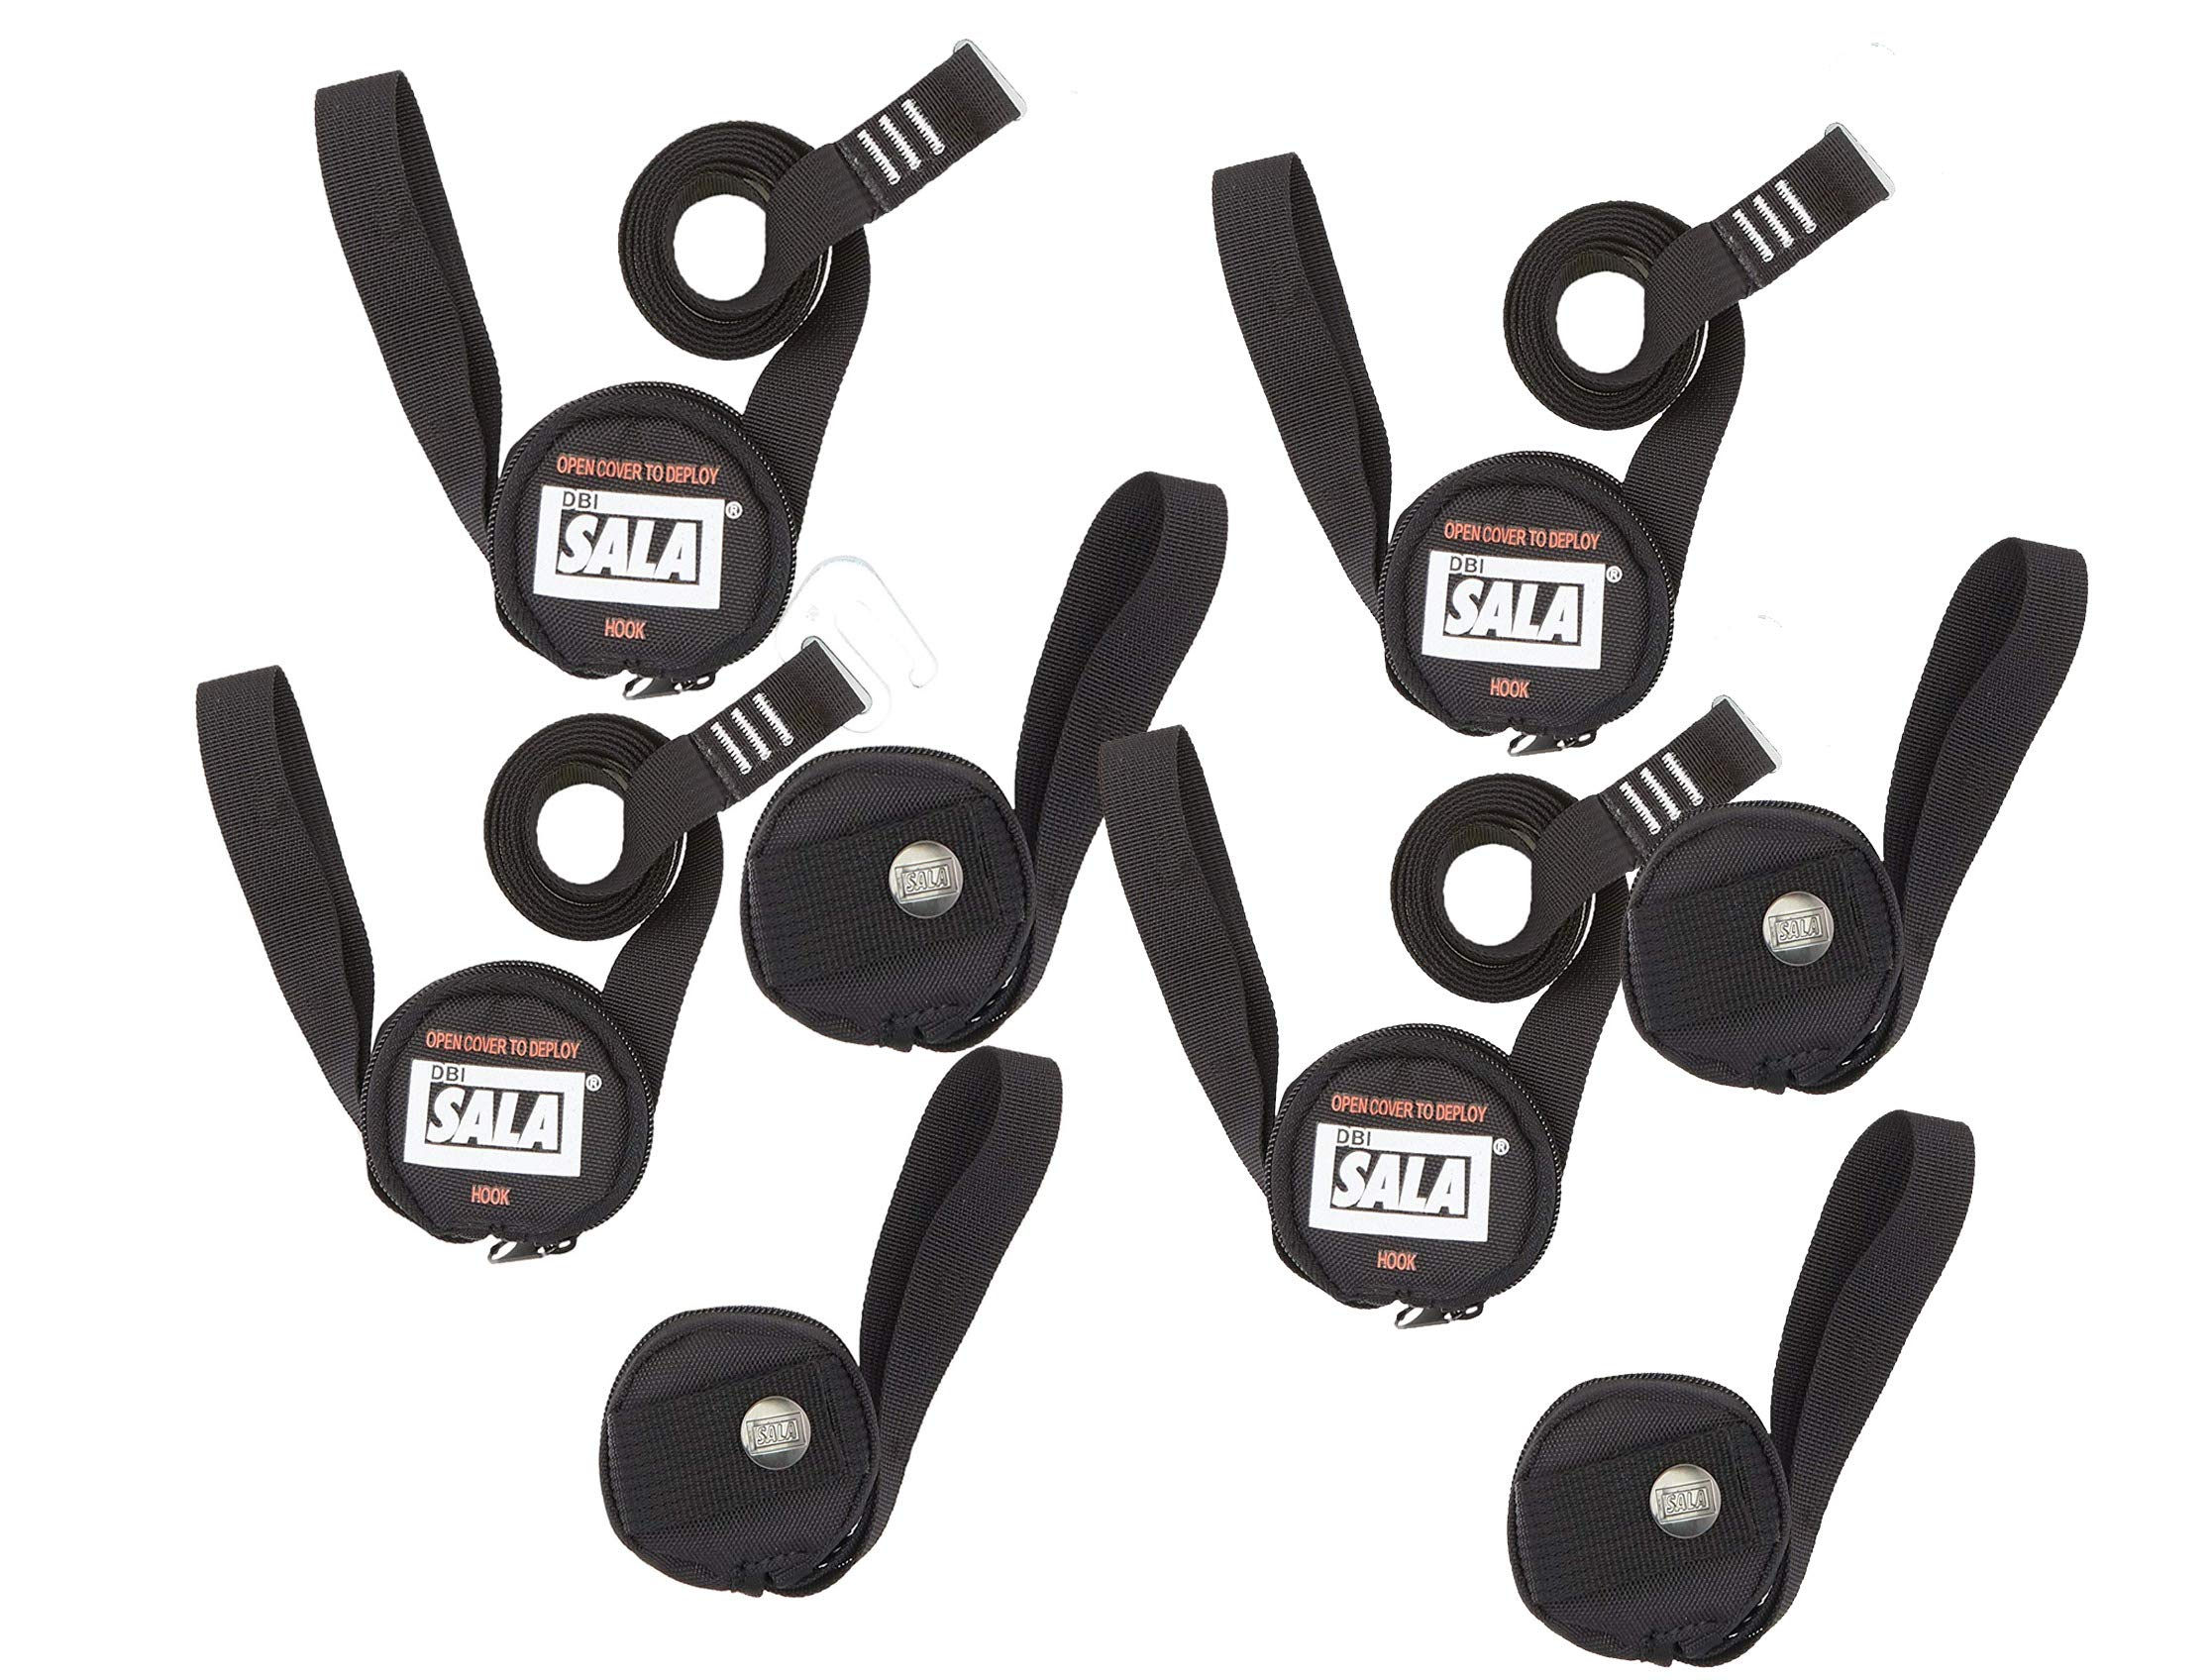 DBI SALA 9501403 Nylon Safety Suspension Trauma Straps (4 Pack)